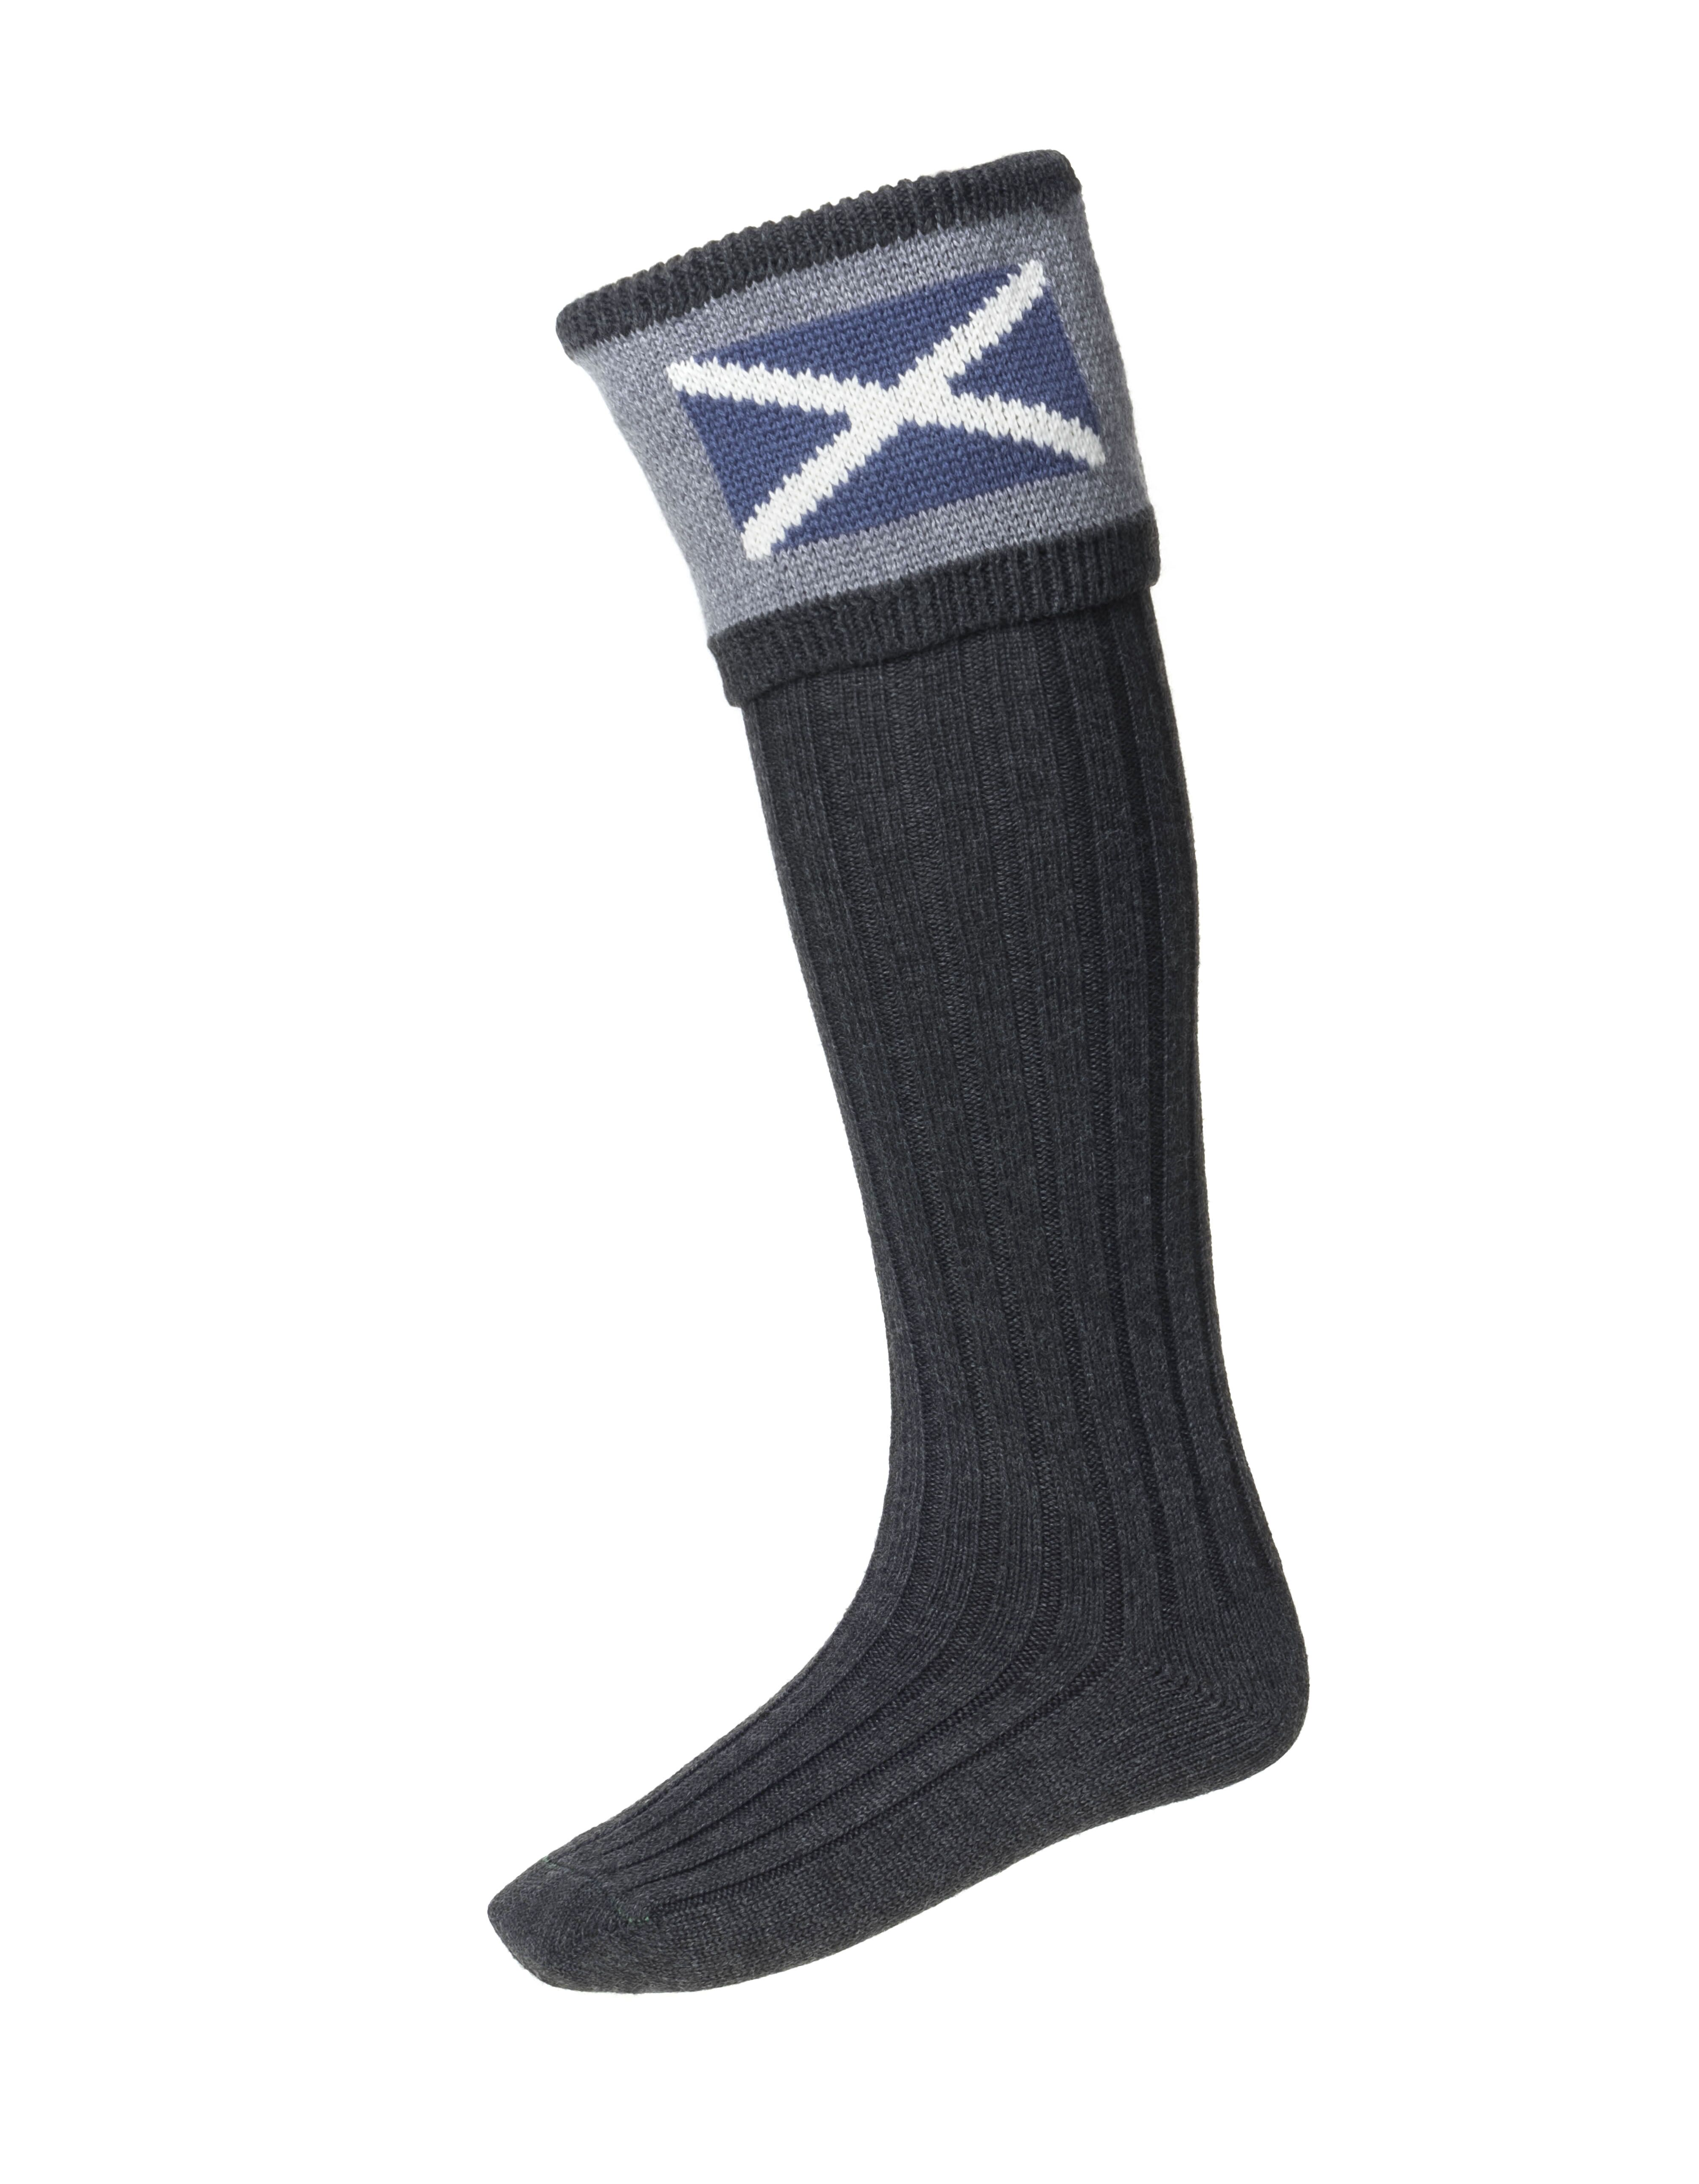 House of Cheviot Scottish Saltire Kilt Hose